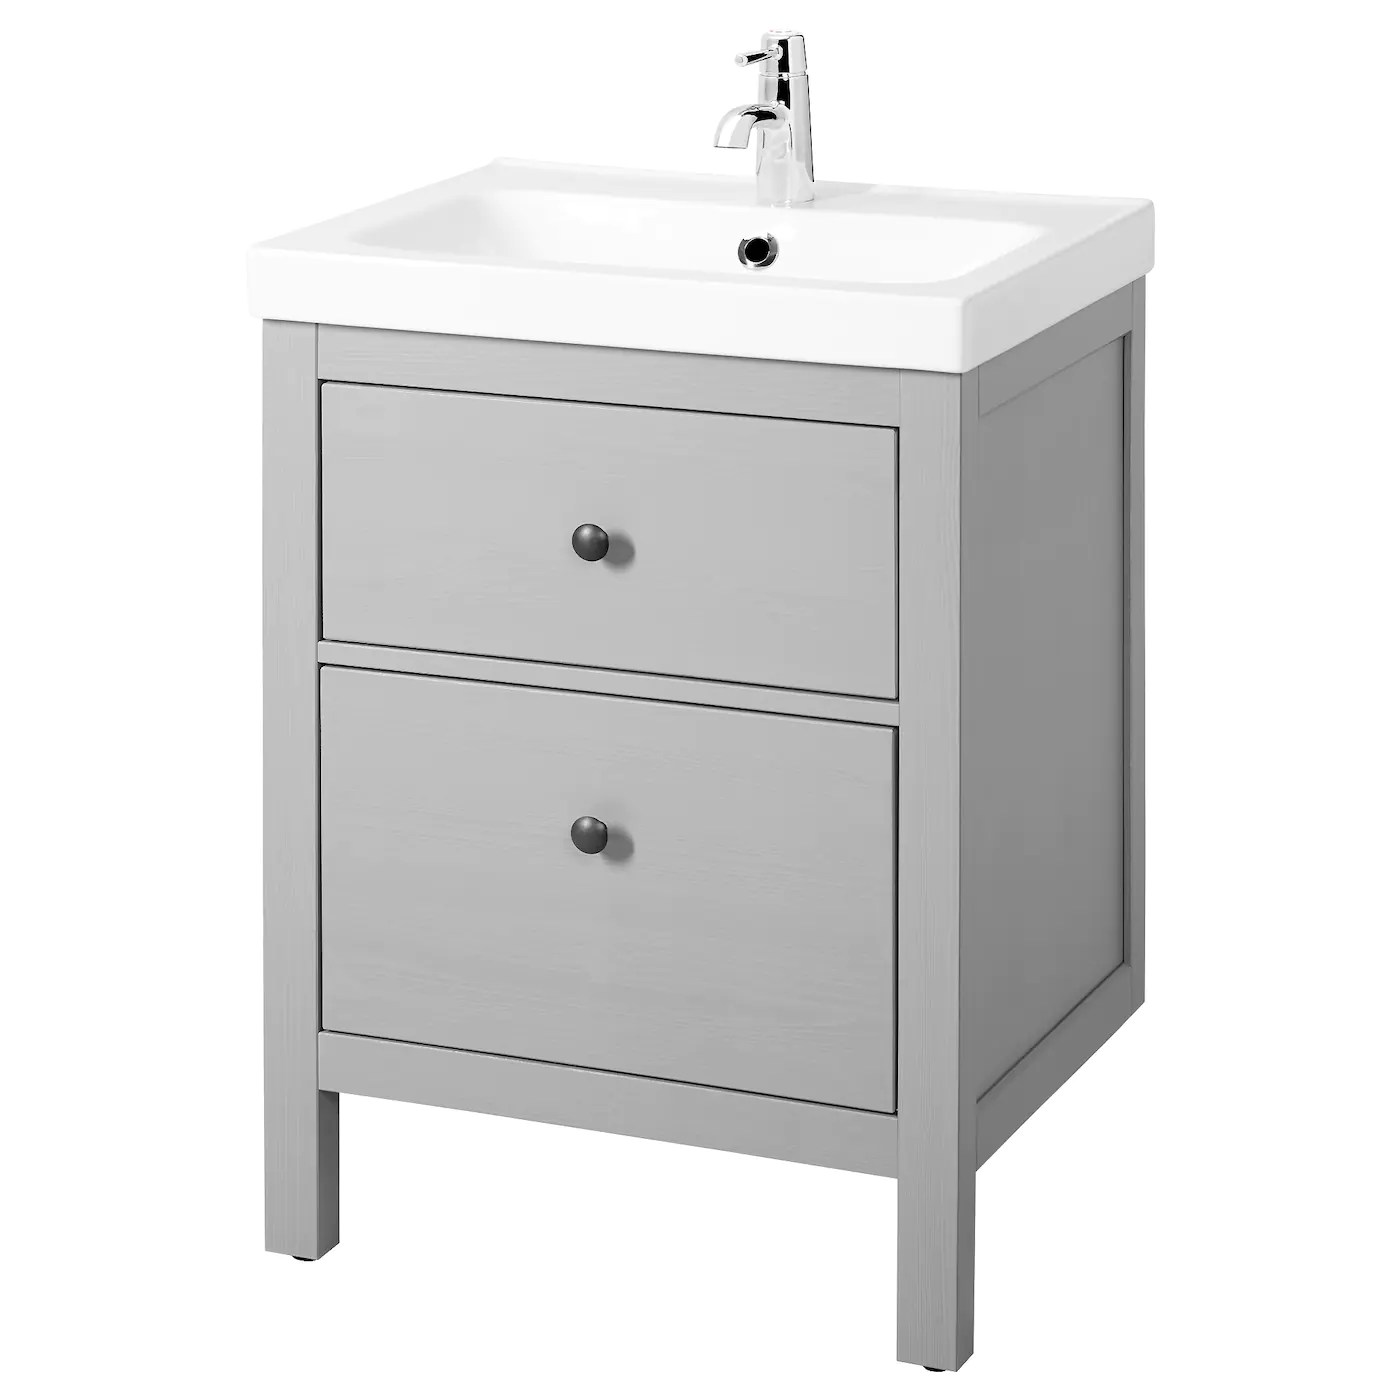 hemnes odensvik sink cabinet with 2 drawers gray 24 3 4x19 1 4x35